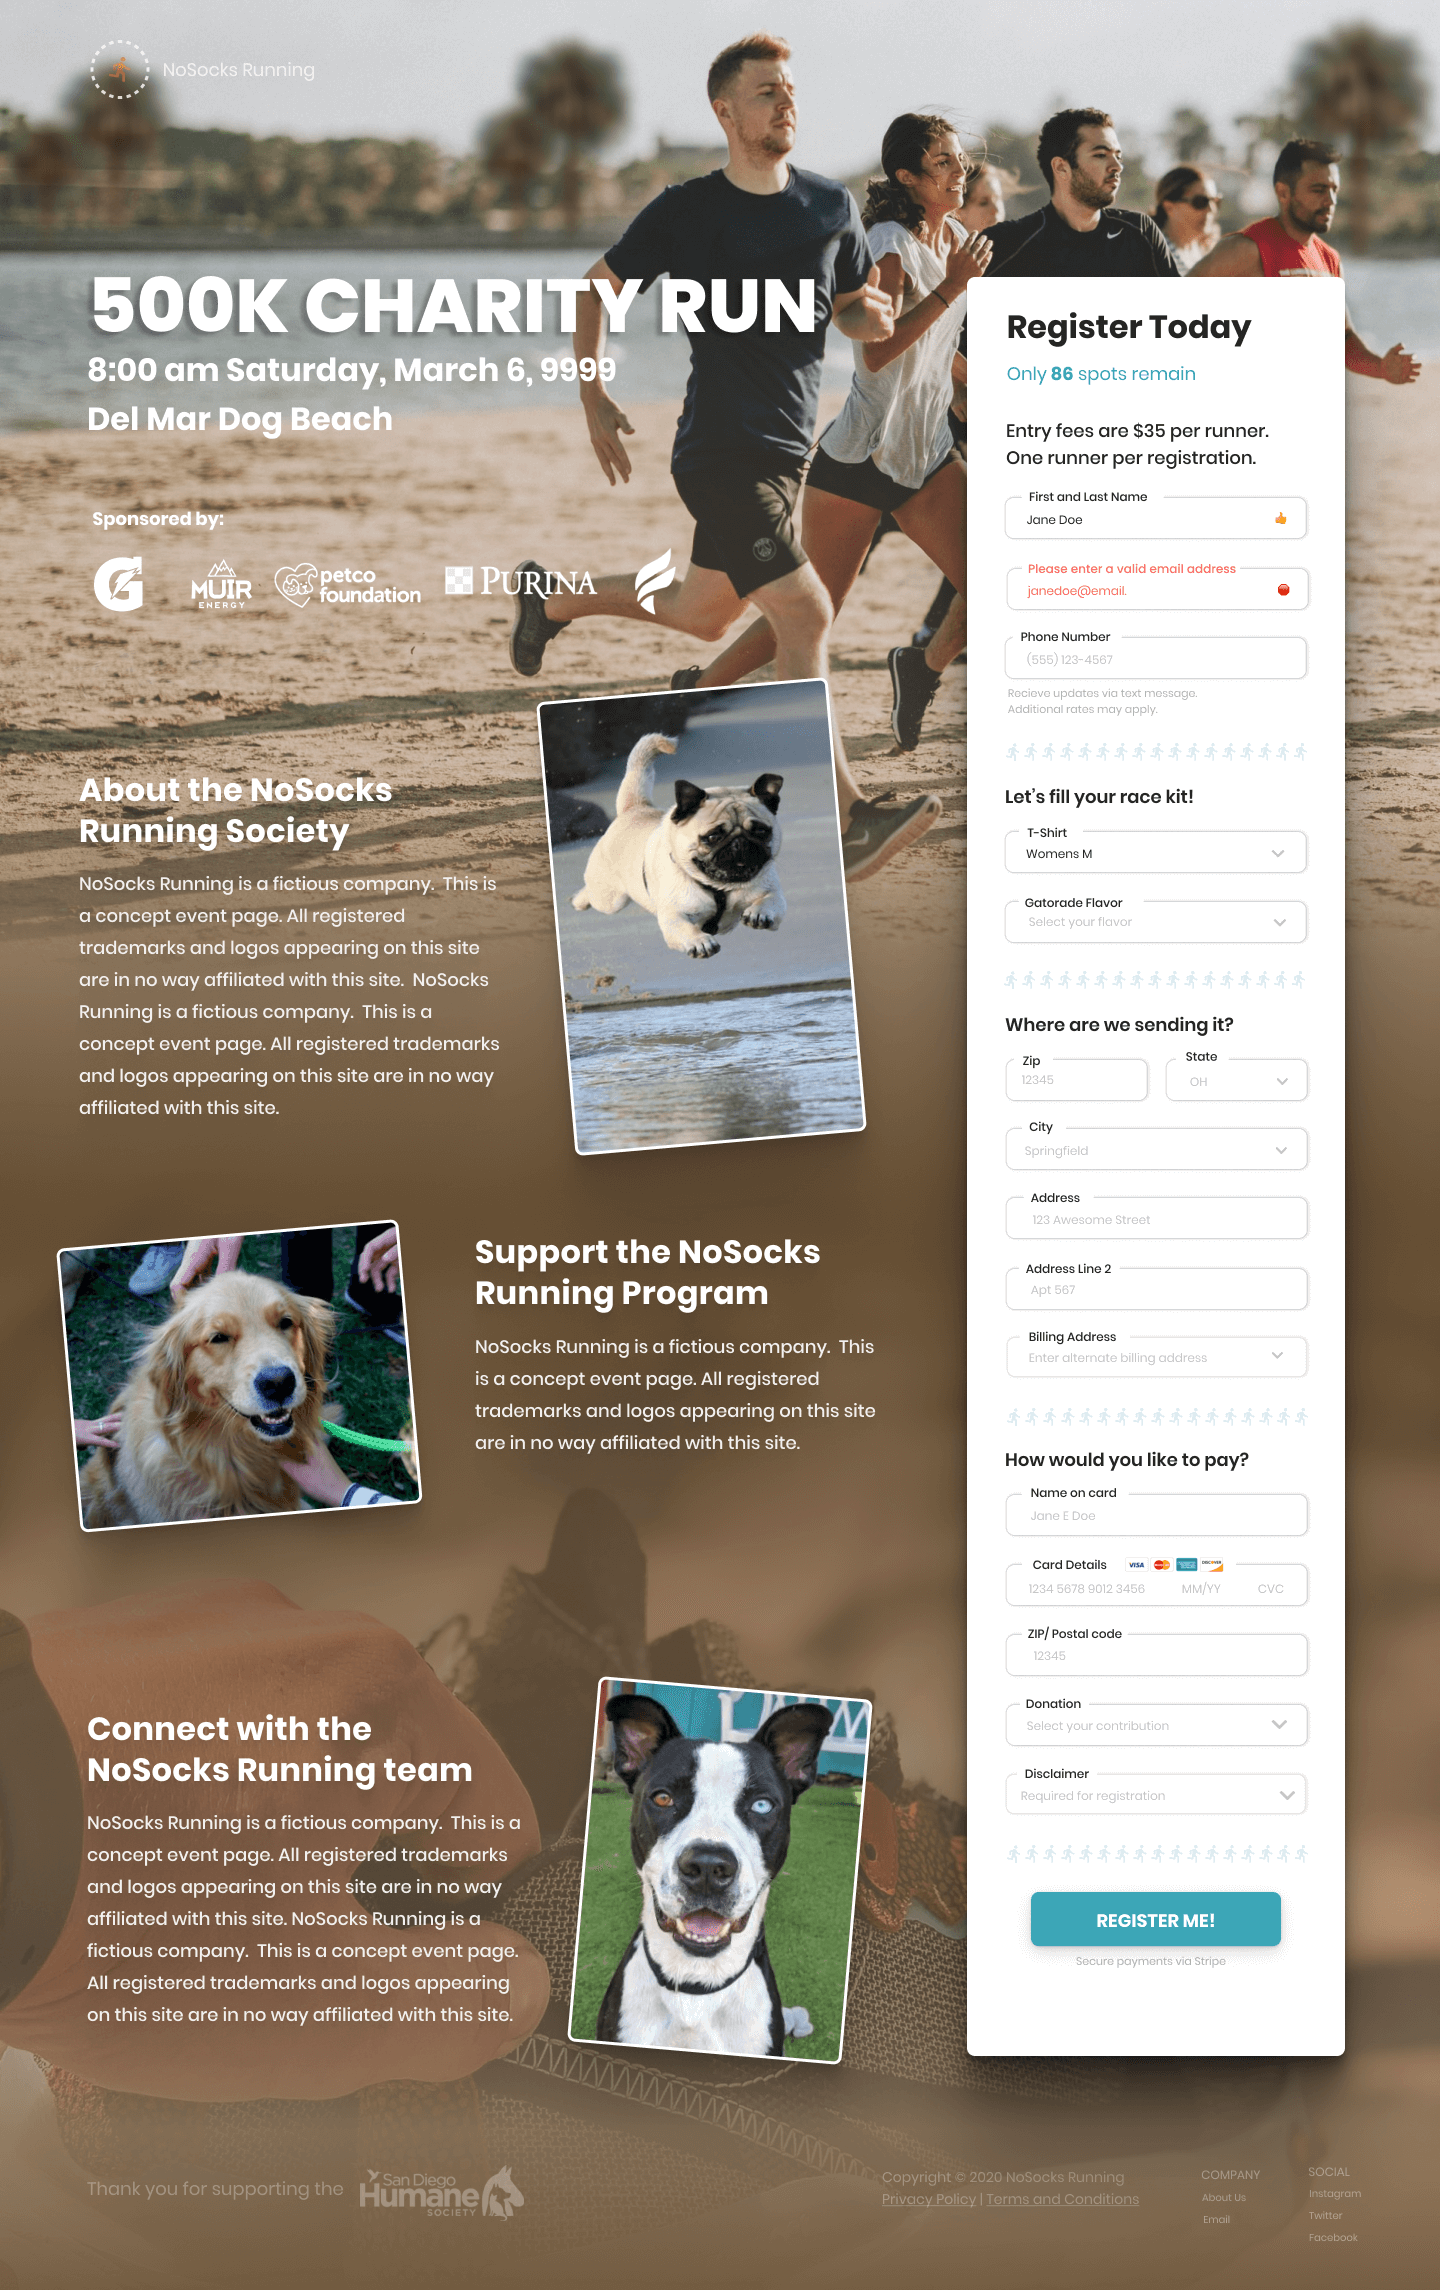 A concept event page for a fitness event.